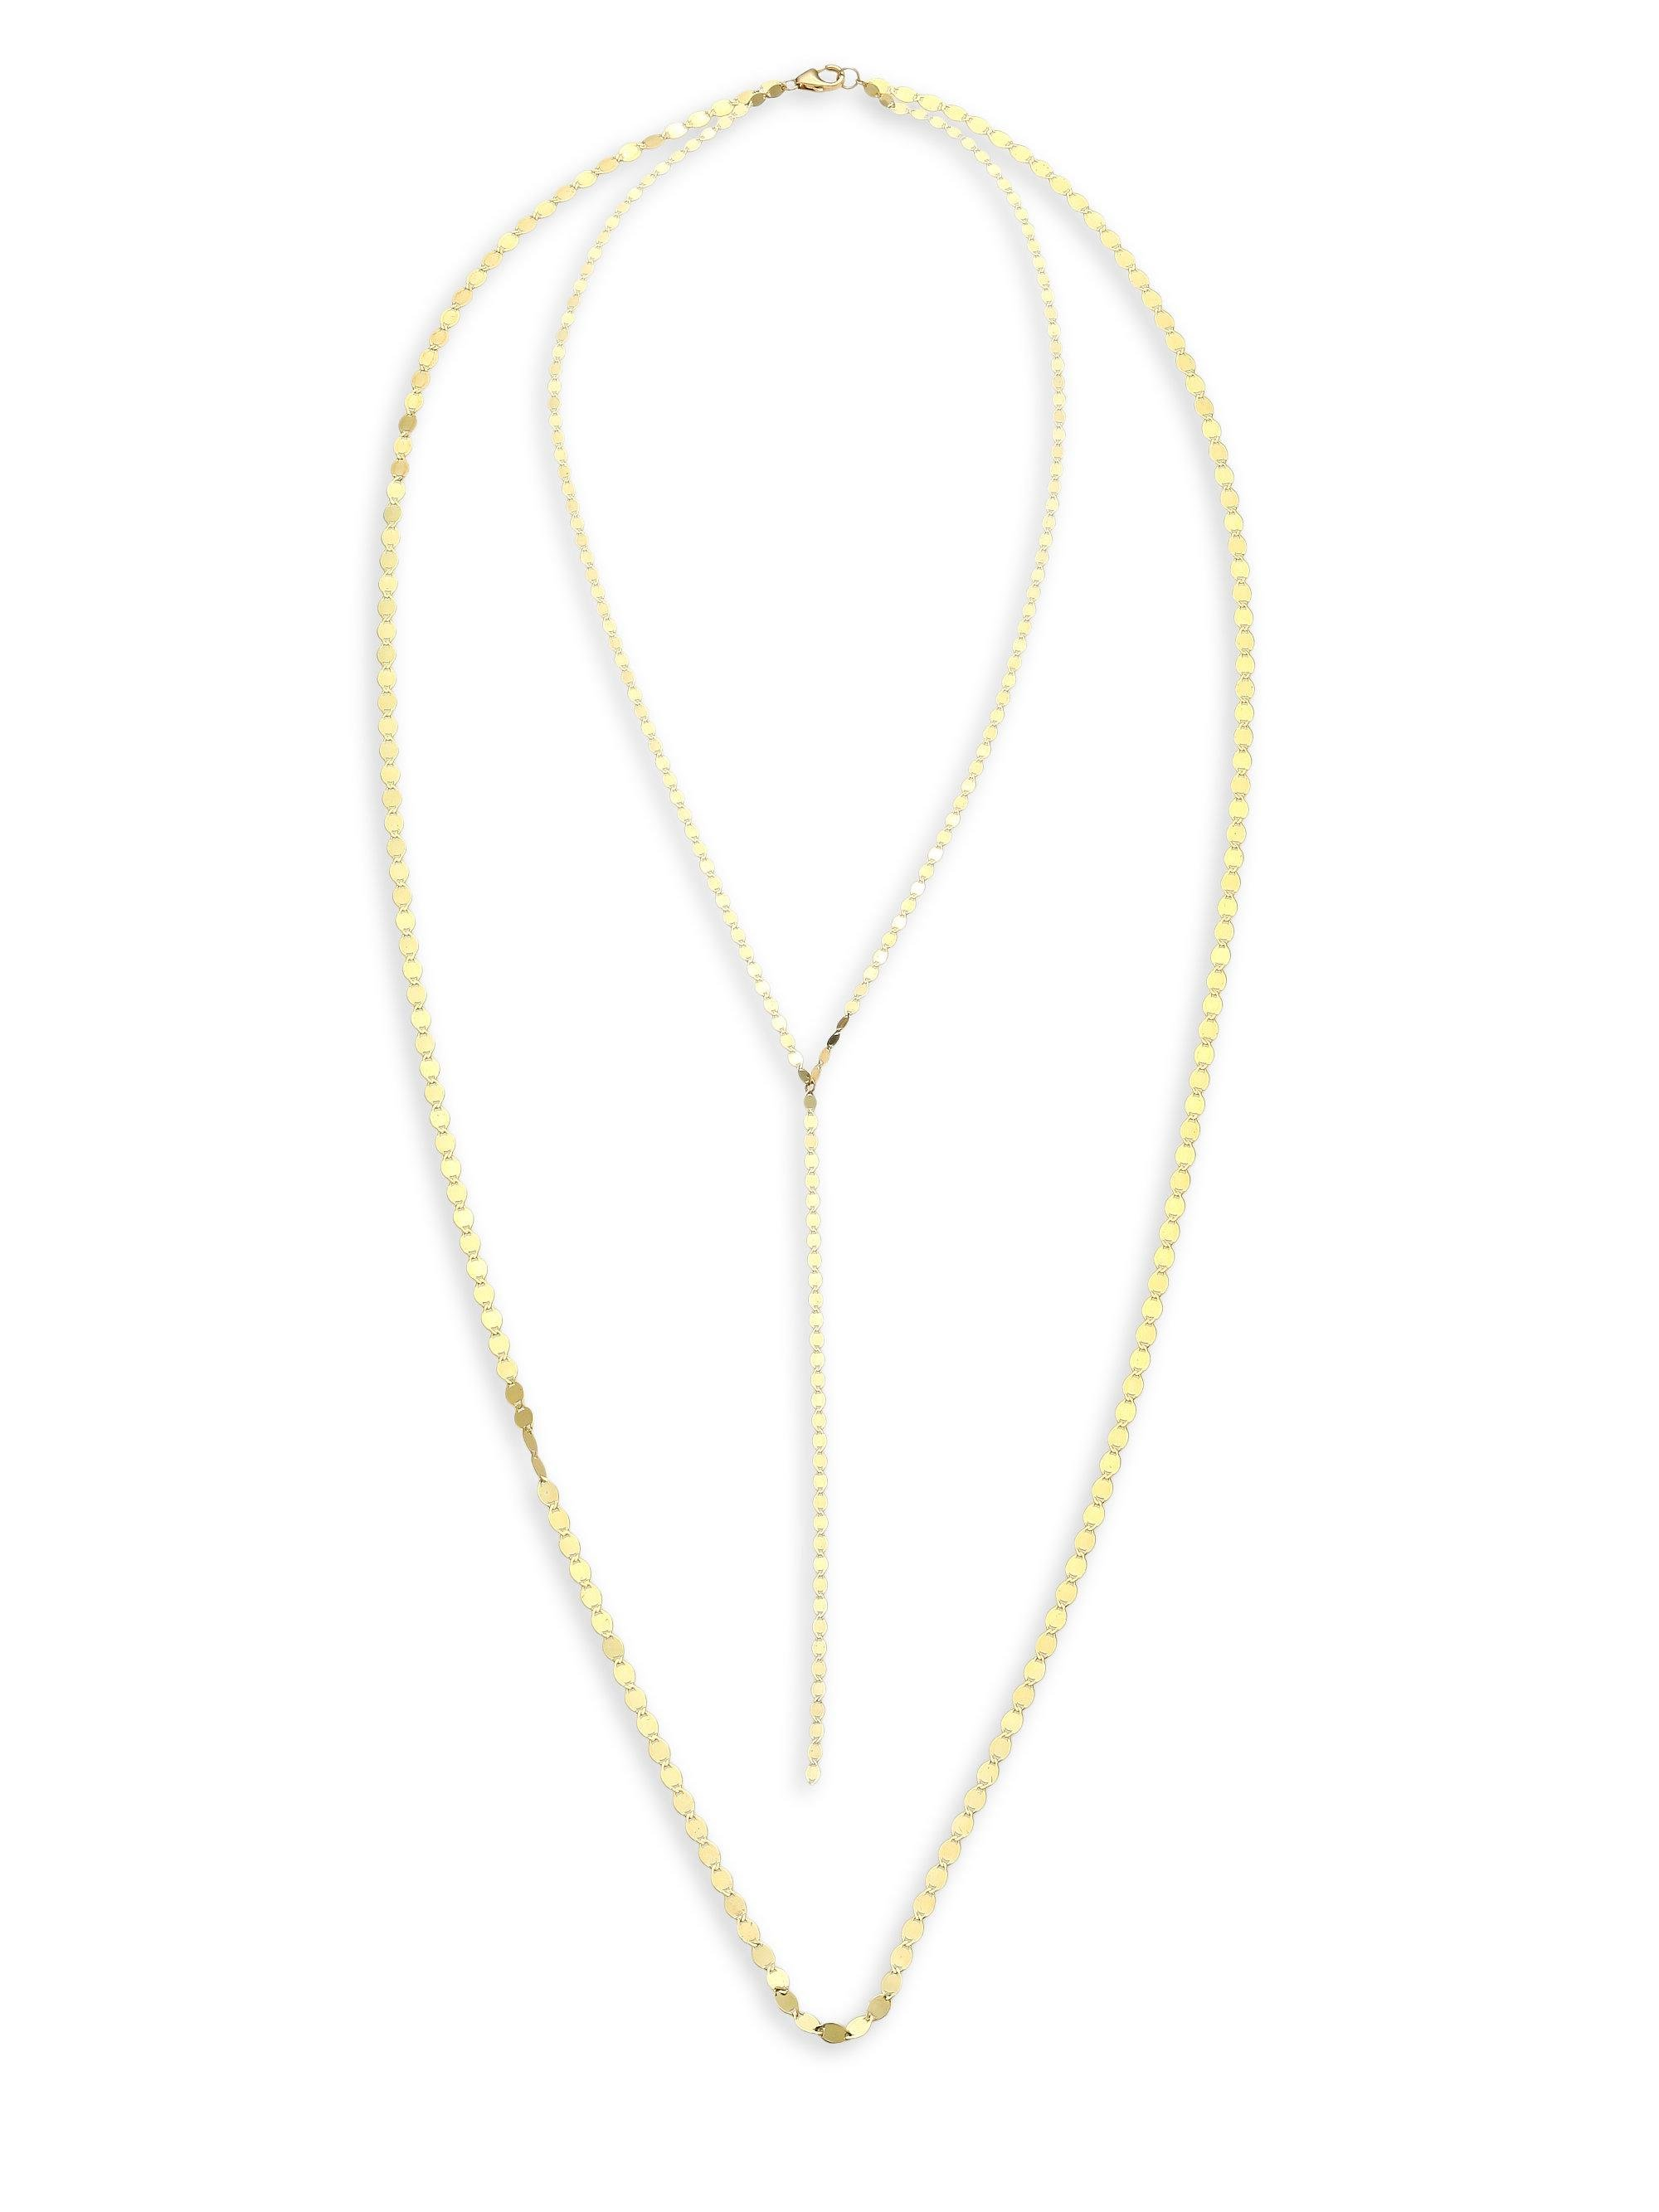 LANA JEWELRY 14k Nude Duo Necklace   SHOPBOP   New To Sale